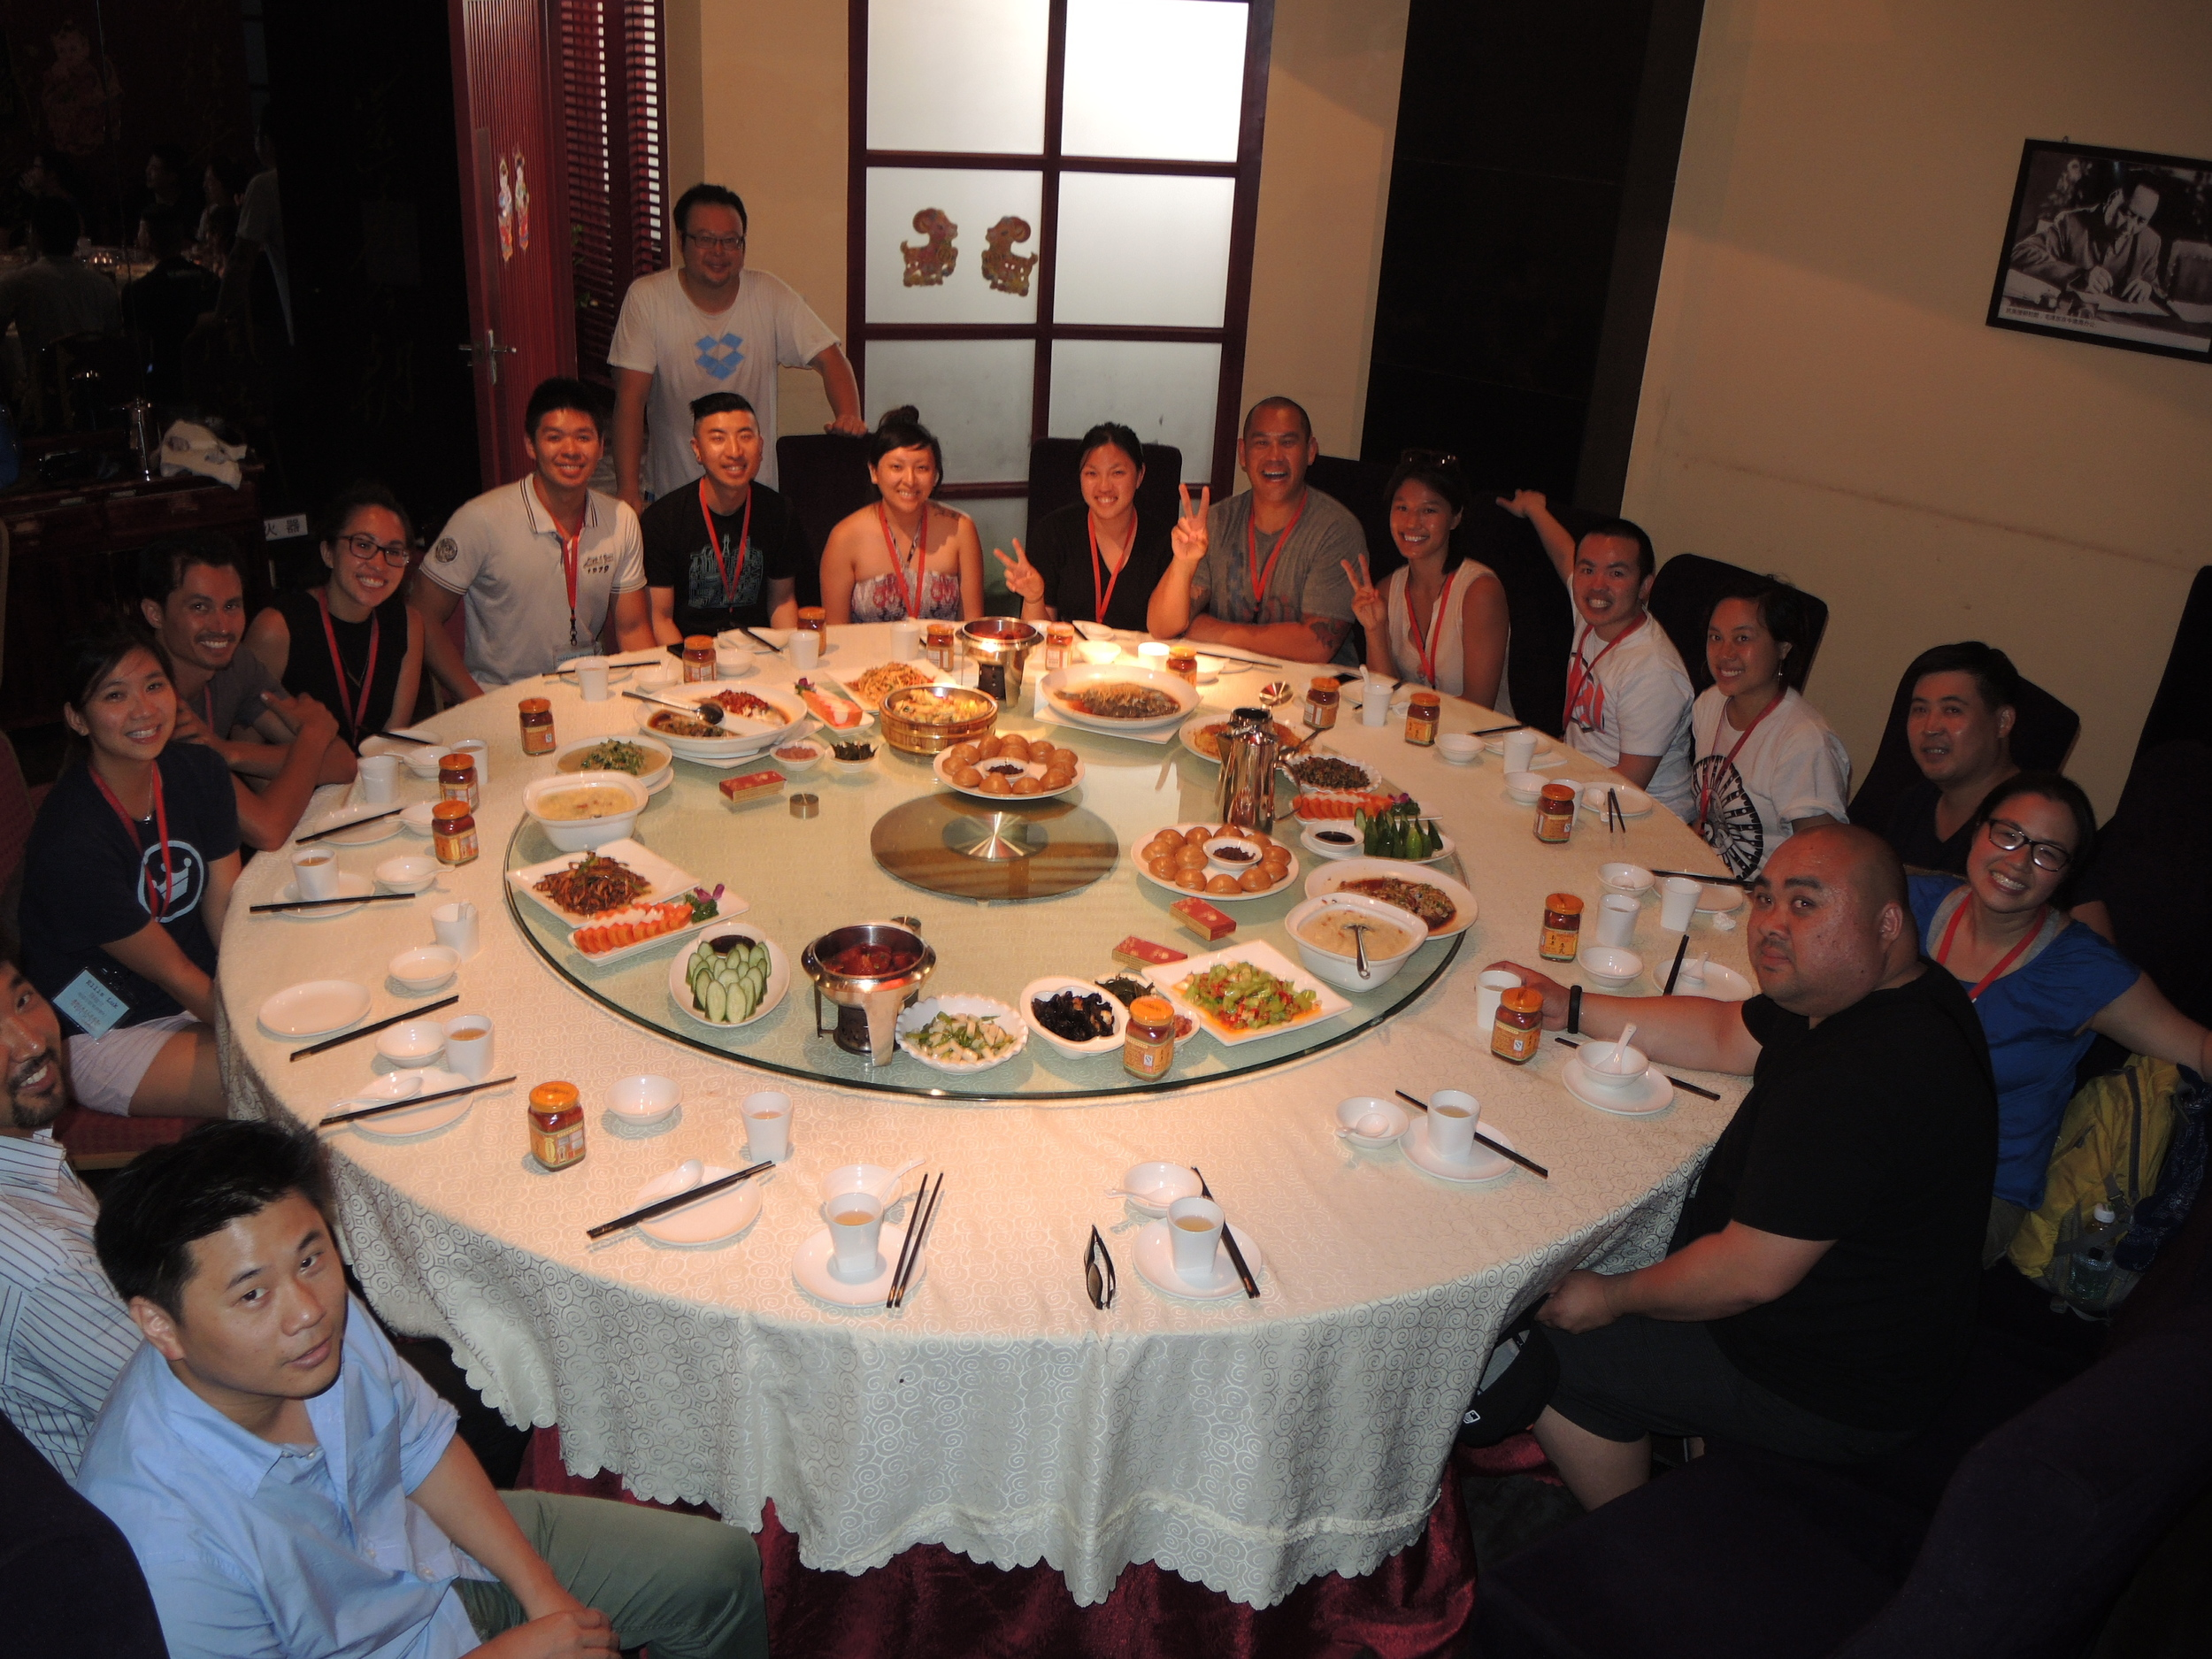 Our first big roundtable lunch at Mao's restaurant